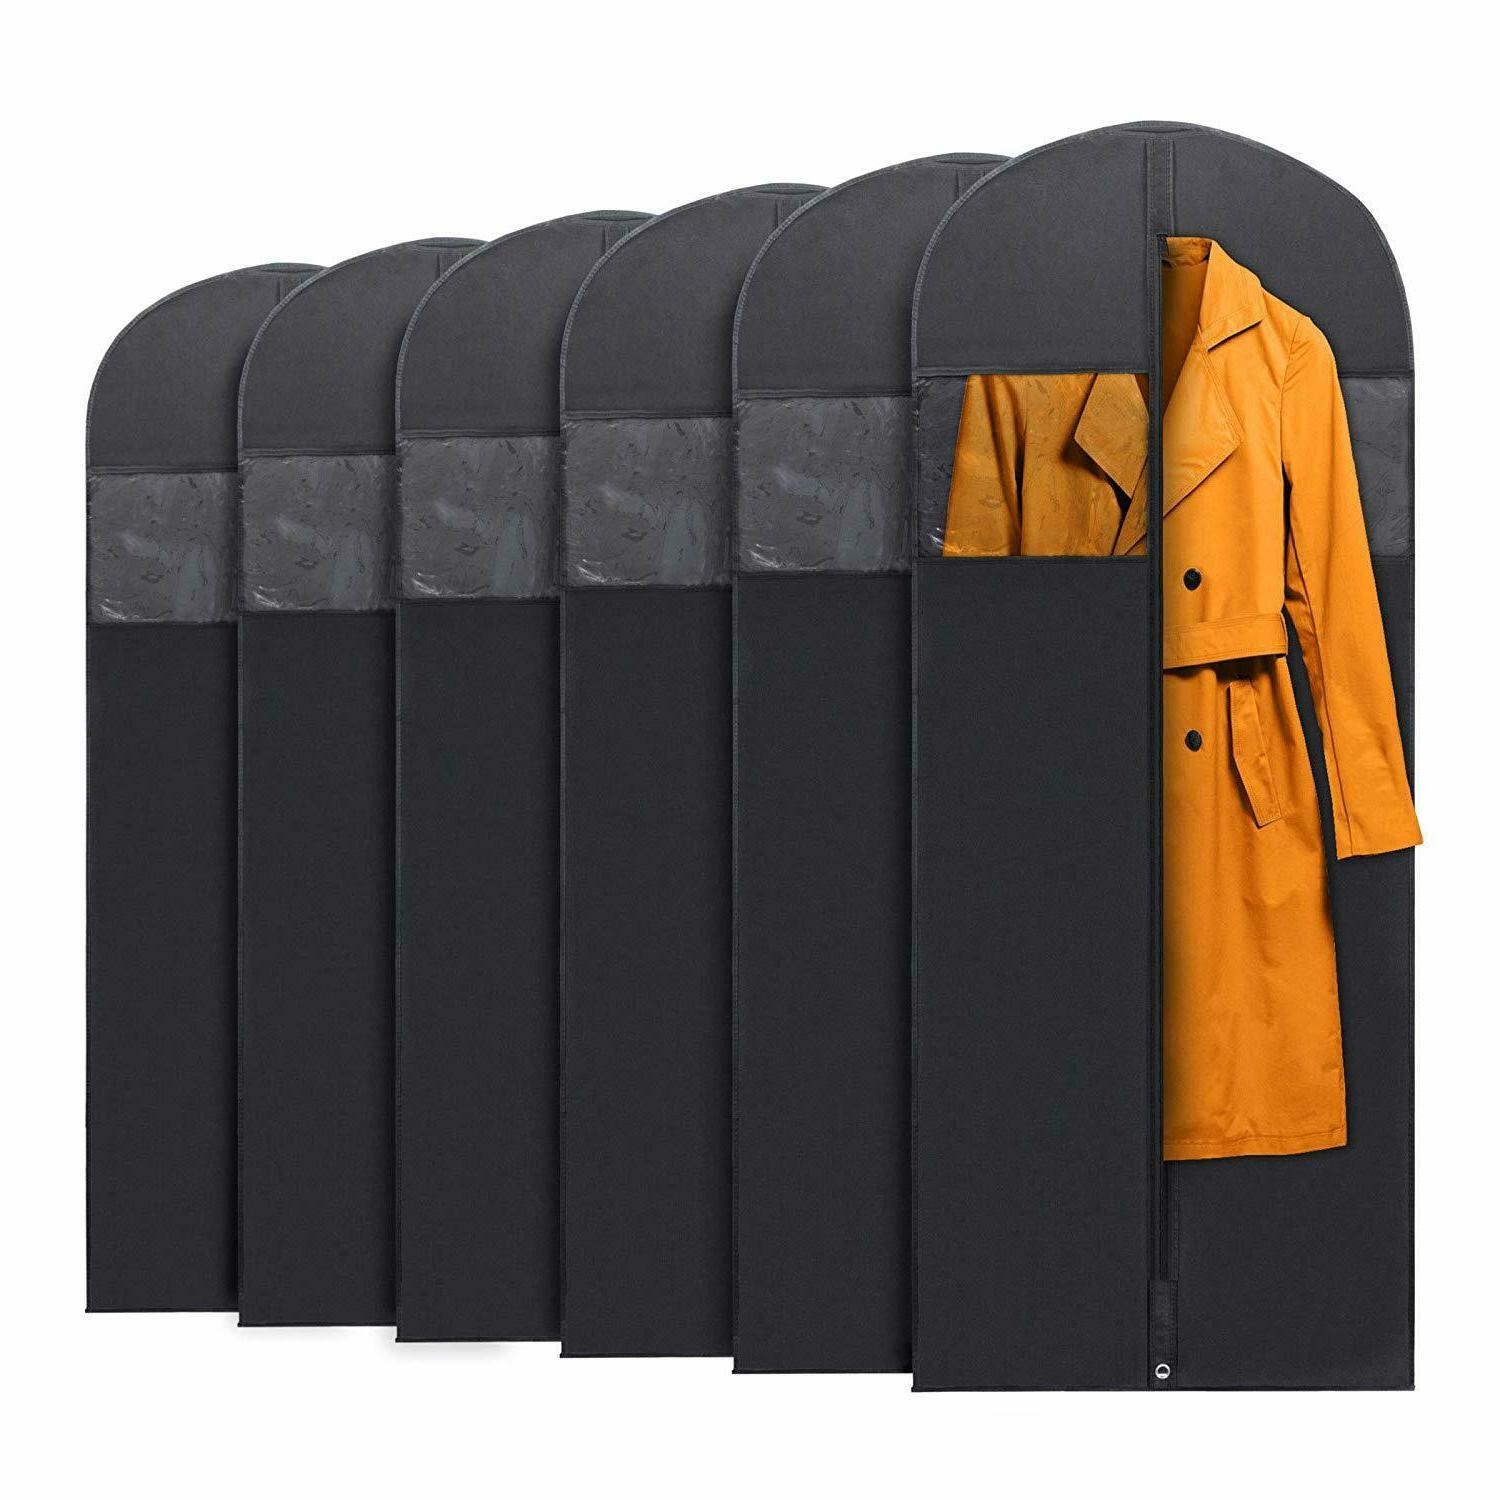 6x hanging garment bags for storage travel